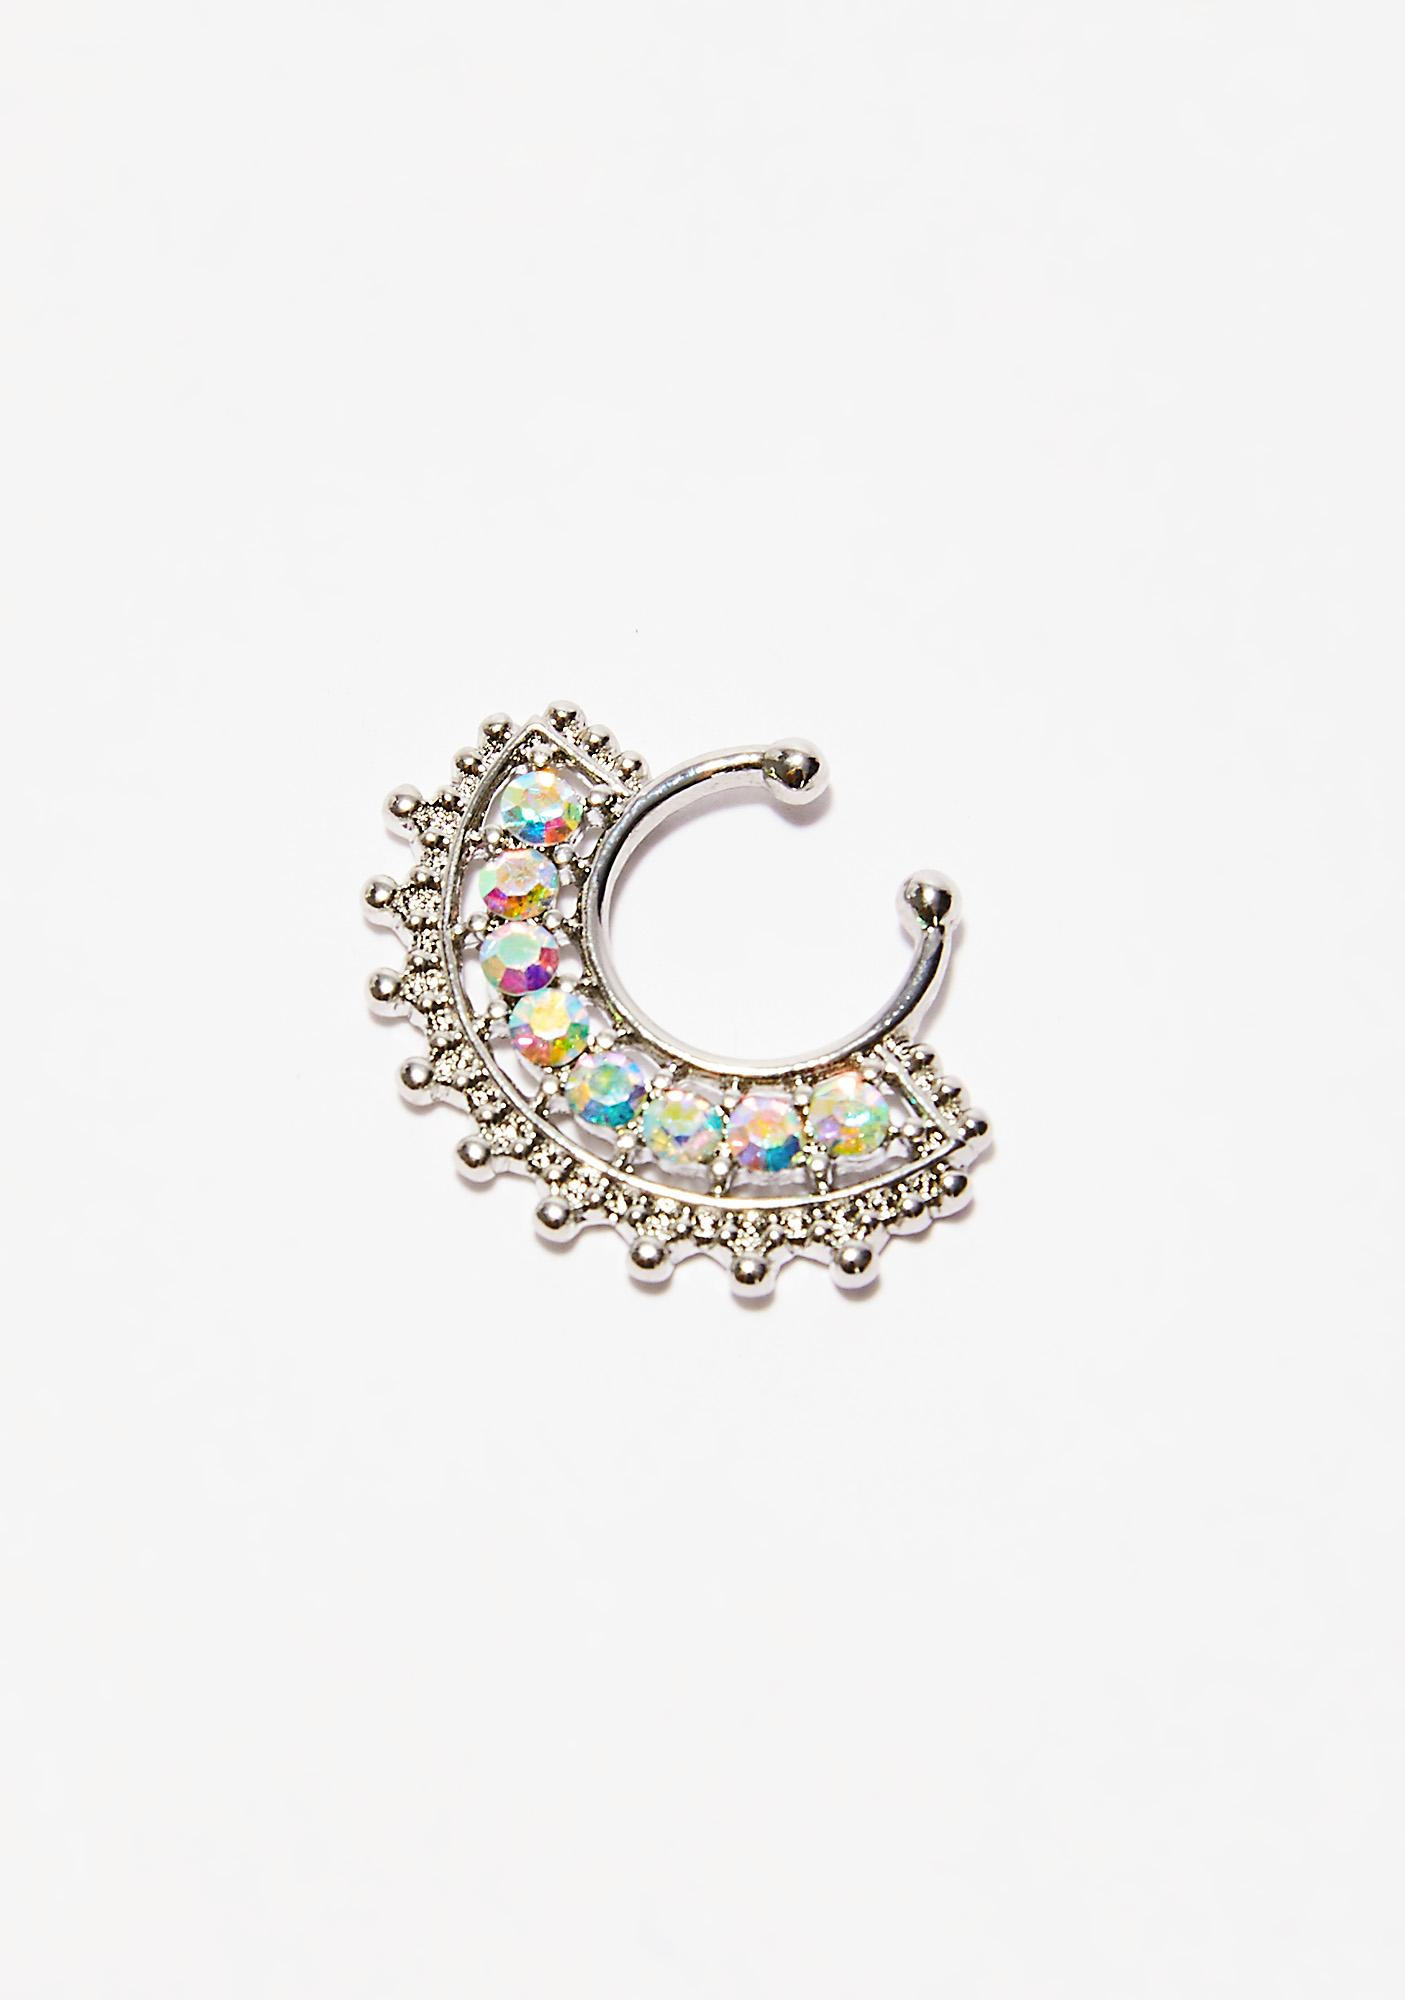 In My Mind Septum Ring